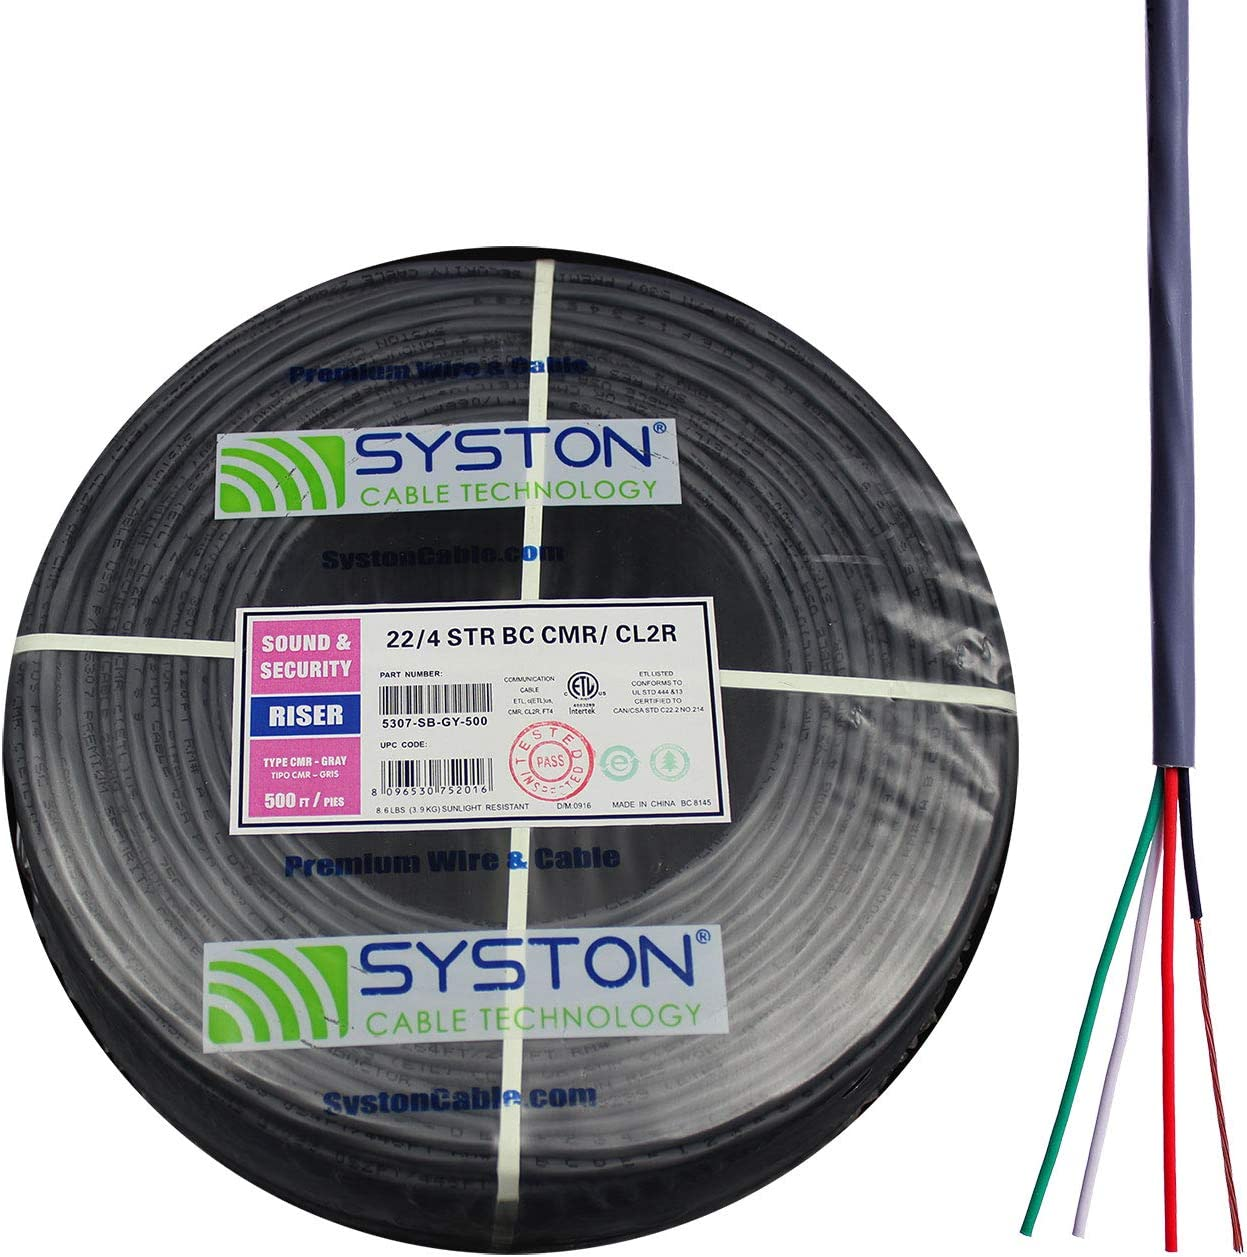 UL//ETL CMR//CL3R Gray 500ft Speed Bag 22//4 22 AWG 4 Stranded Pure Copper Conductors Unshielded Security Control Alarm Cable